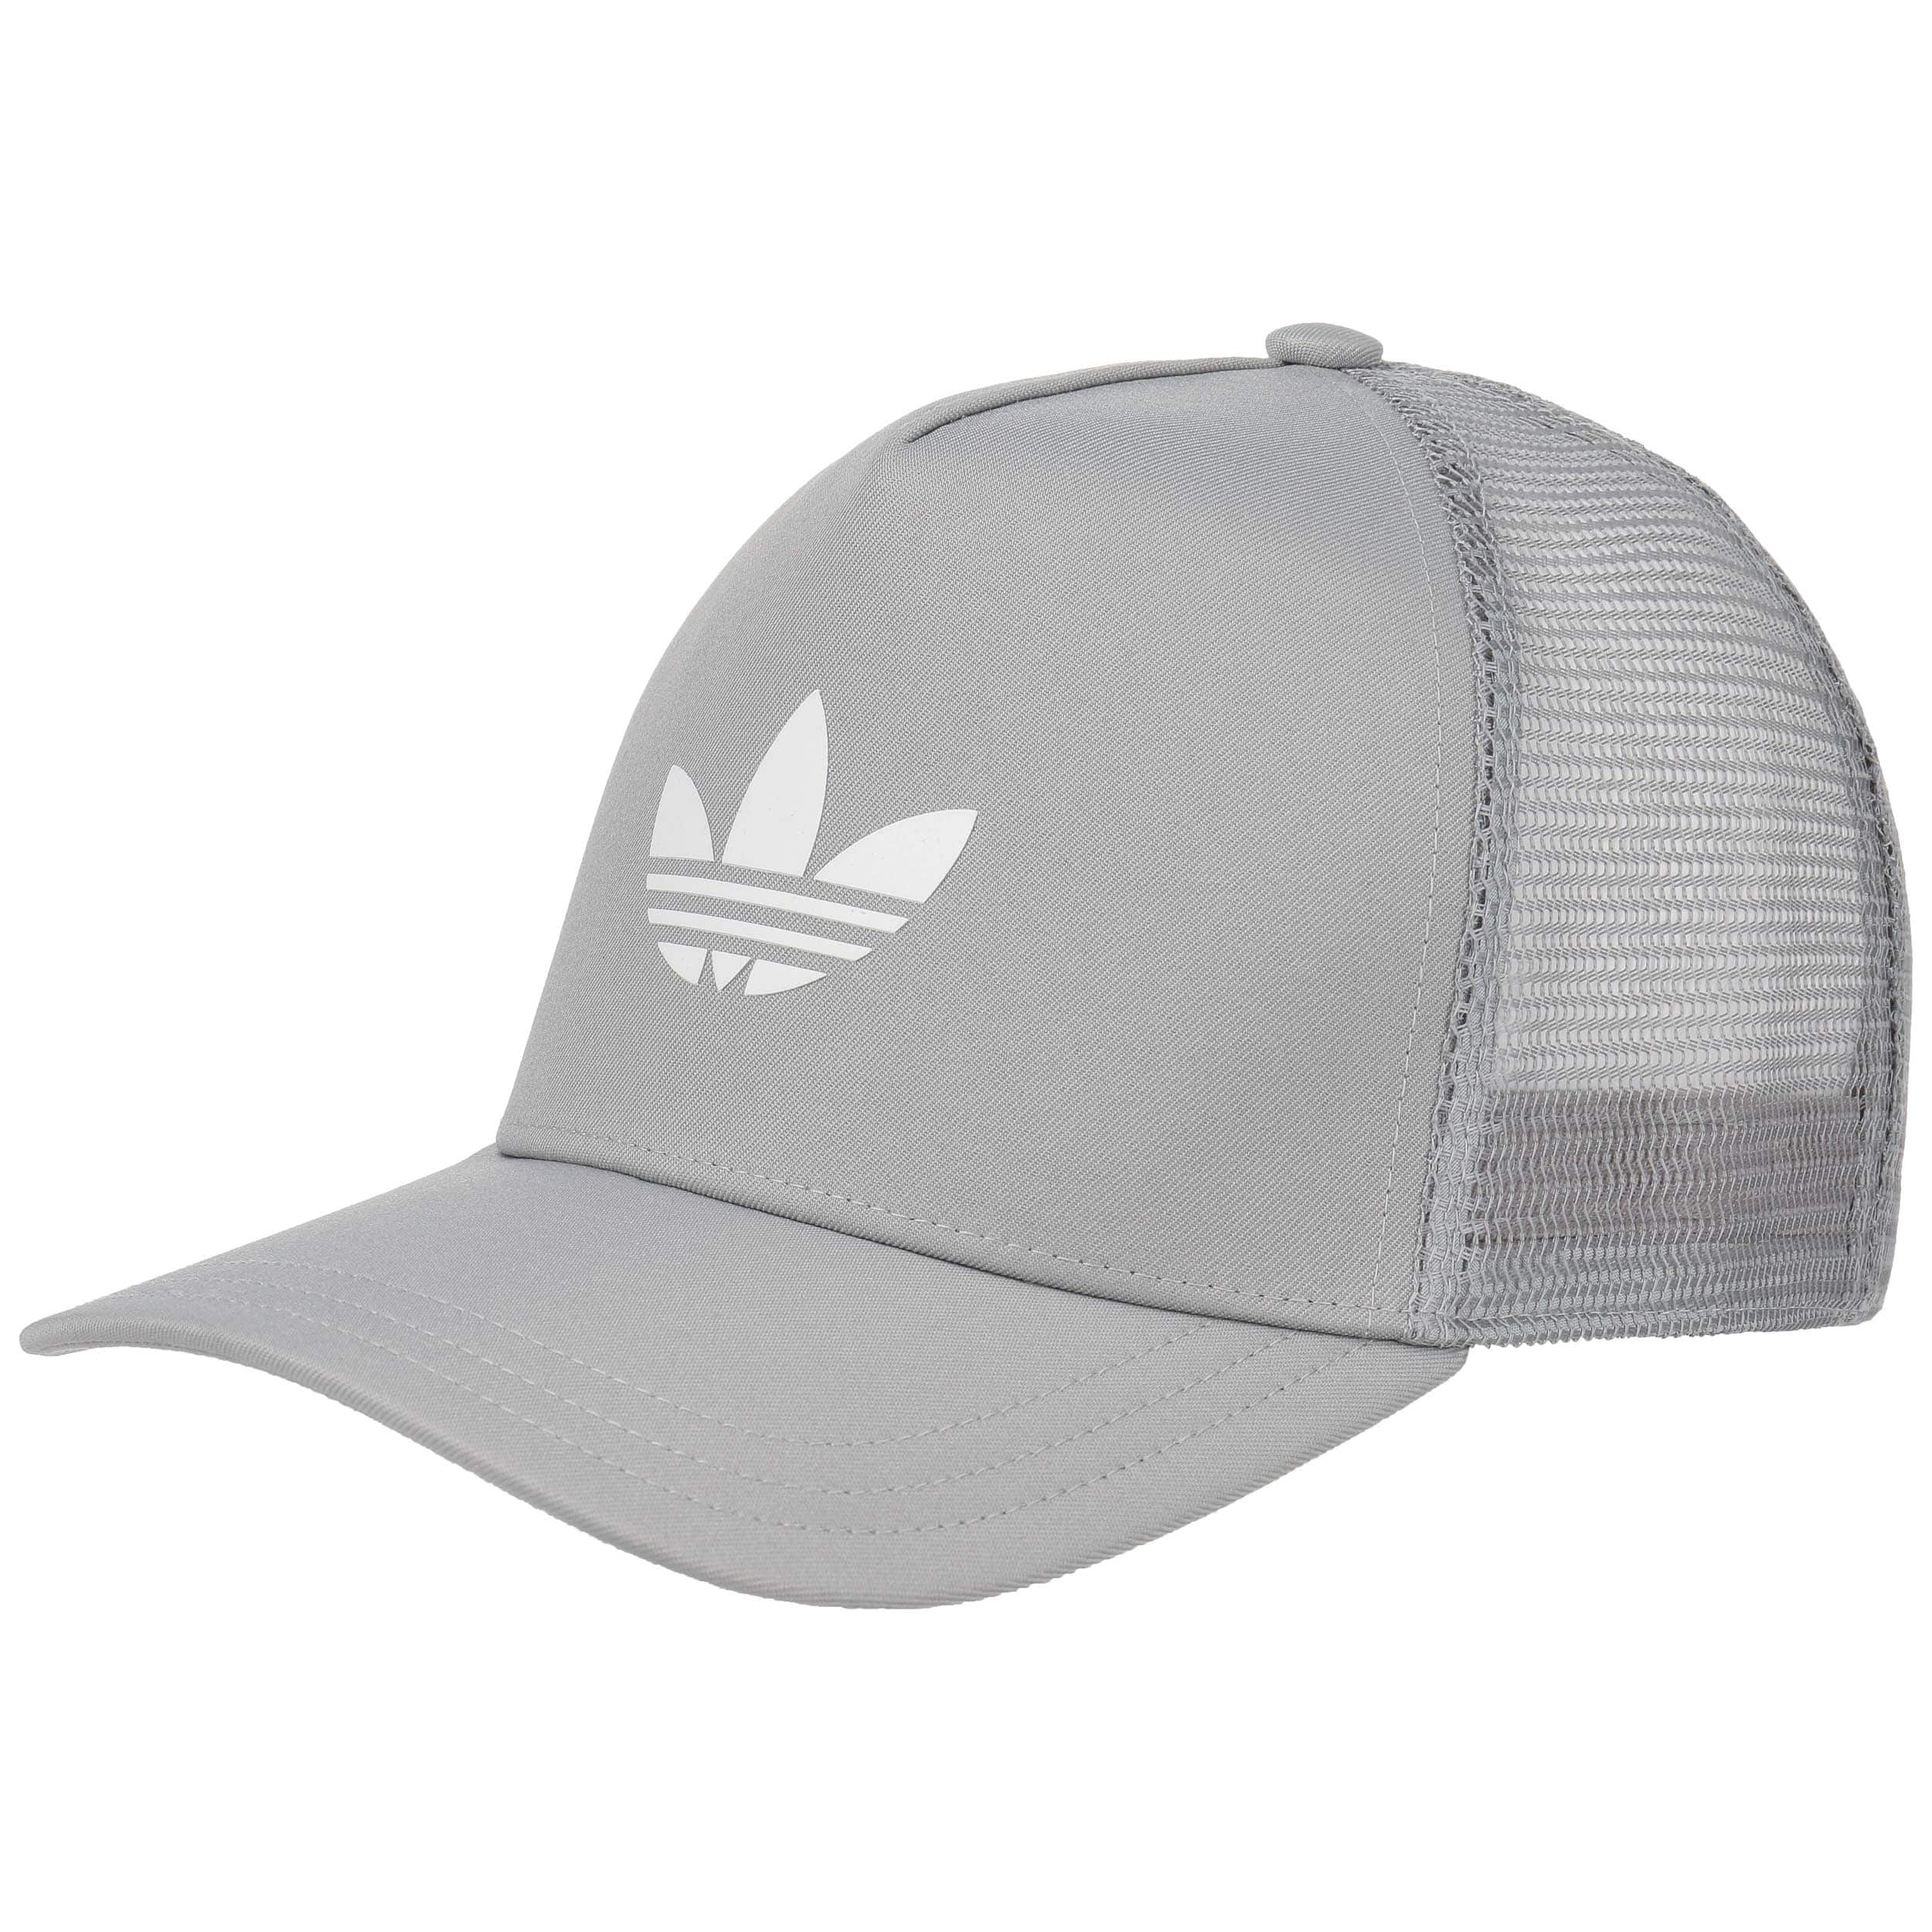 ... Trefoil Trucker Cap by adidas - grey 5 ... 93af3fb32d92